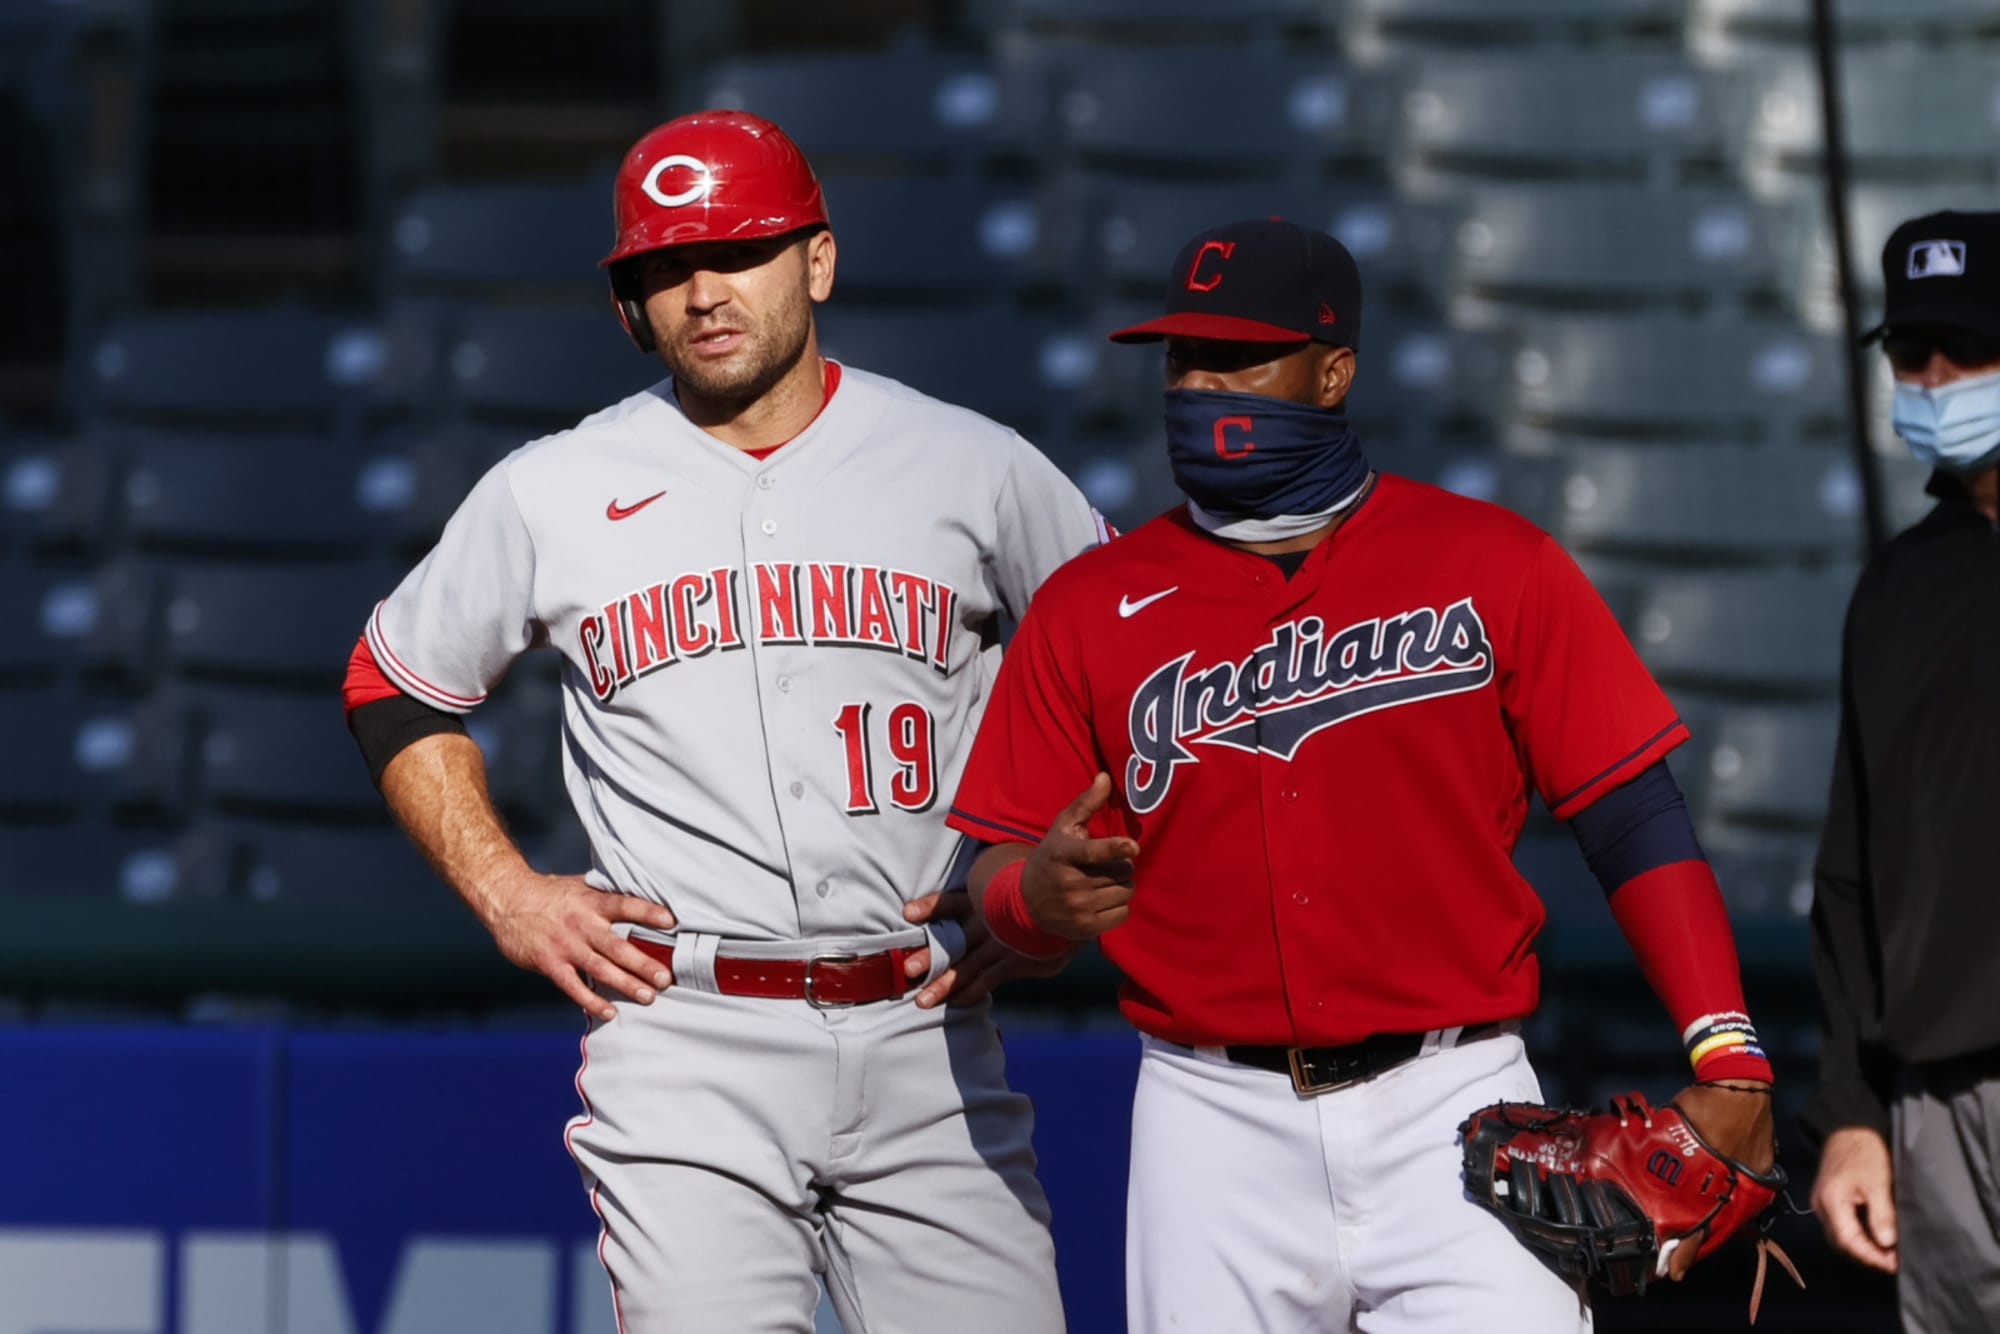 Reds vs. Indians: Pitching preview, prediction, and more